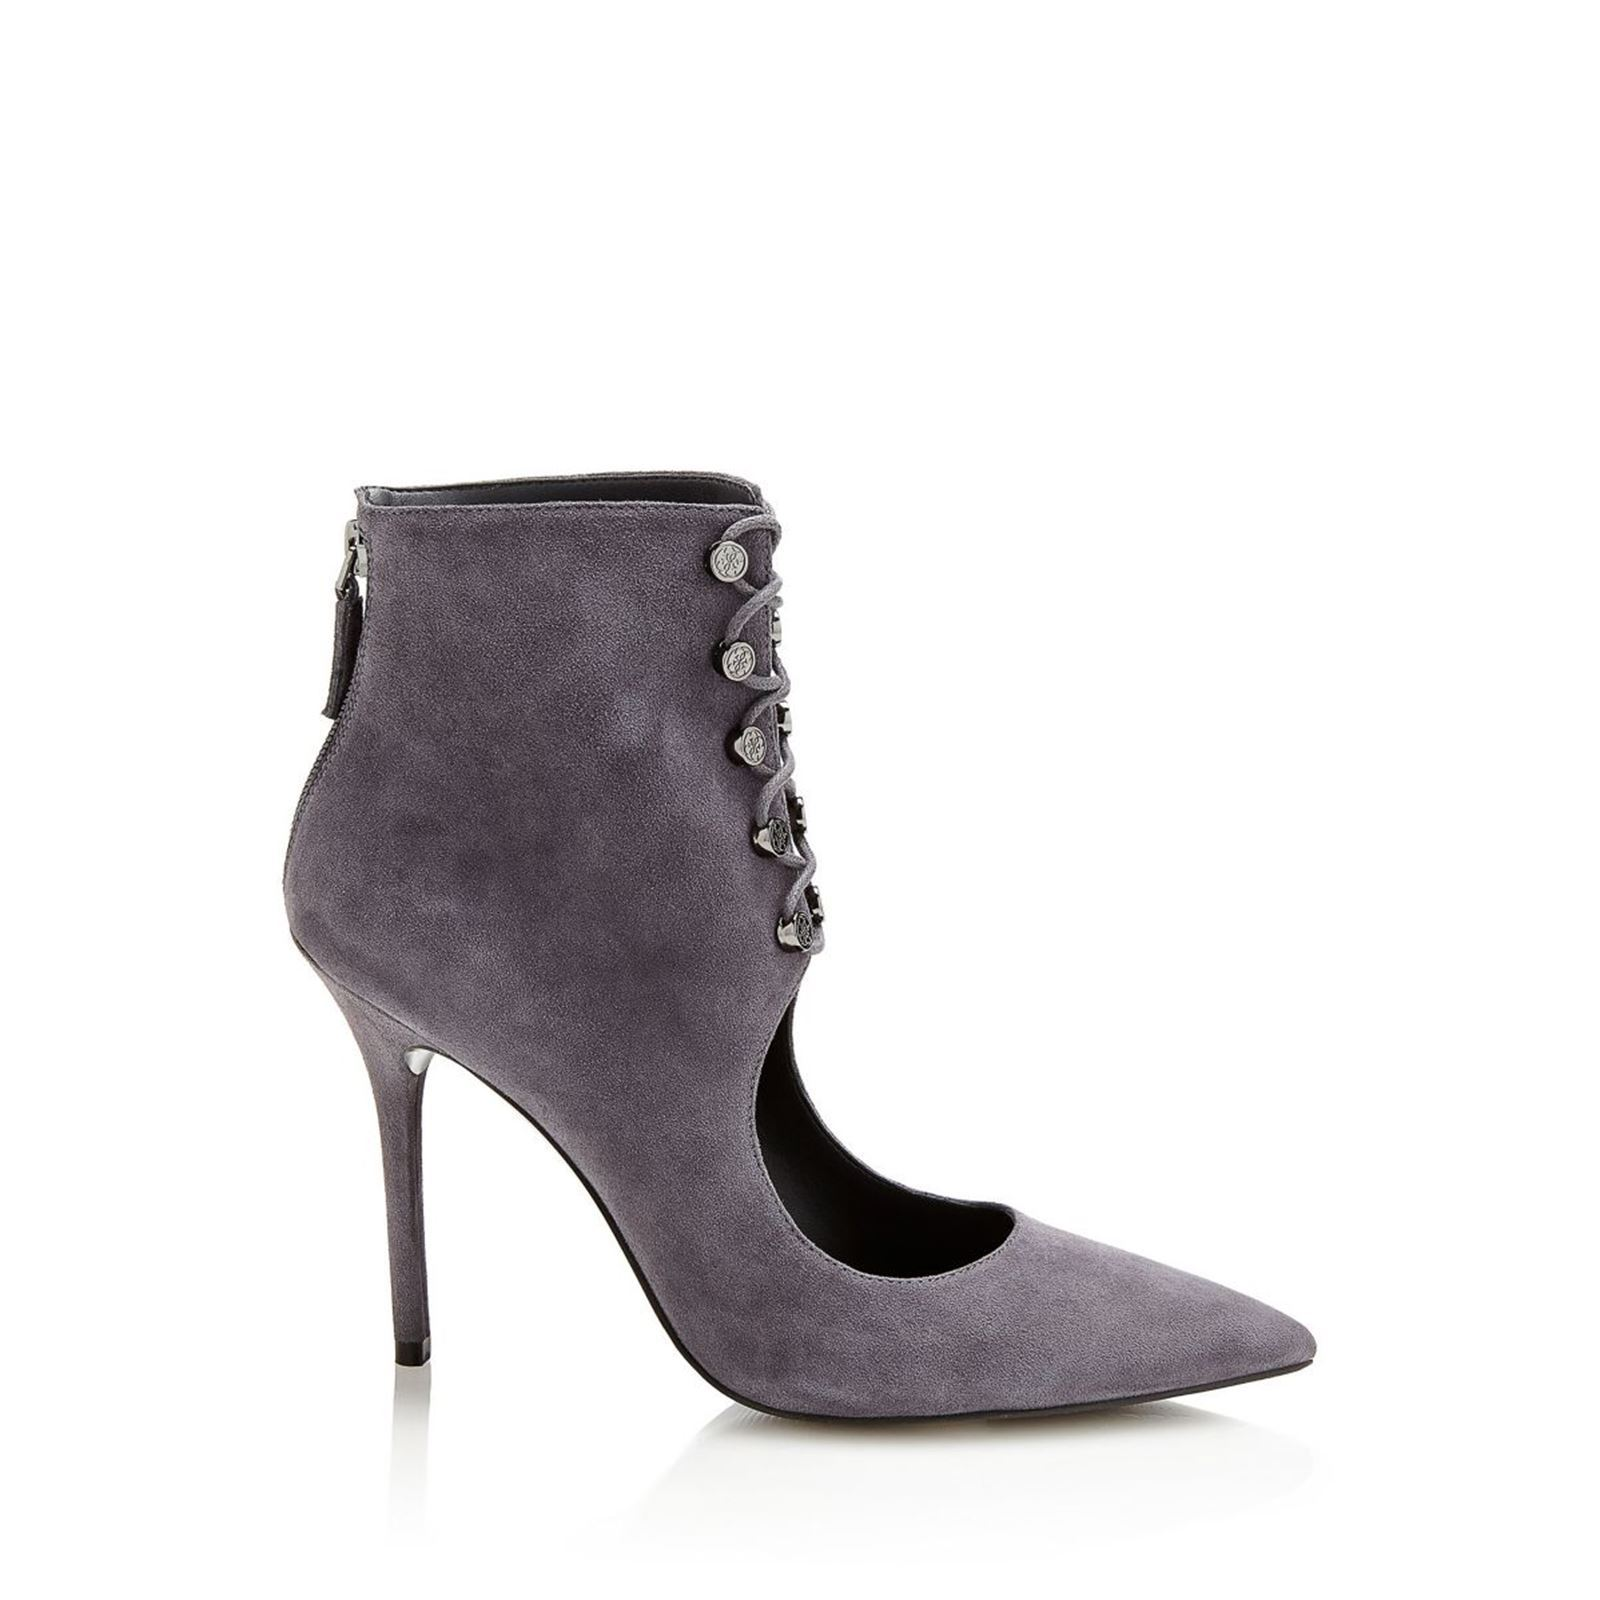 Guess Pivia - Bottines en cuir - gris